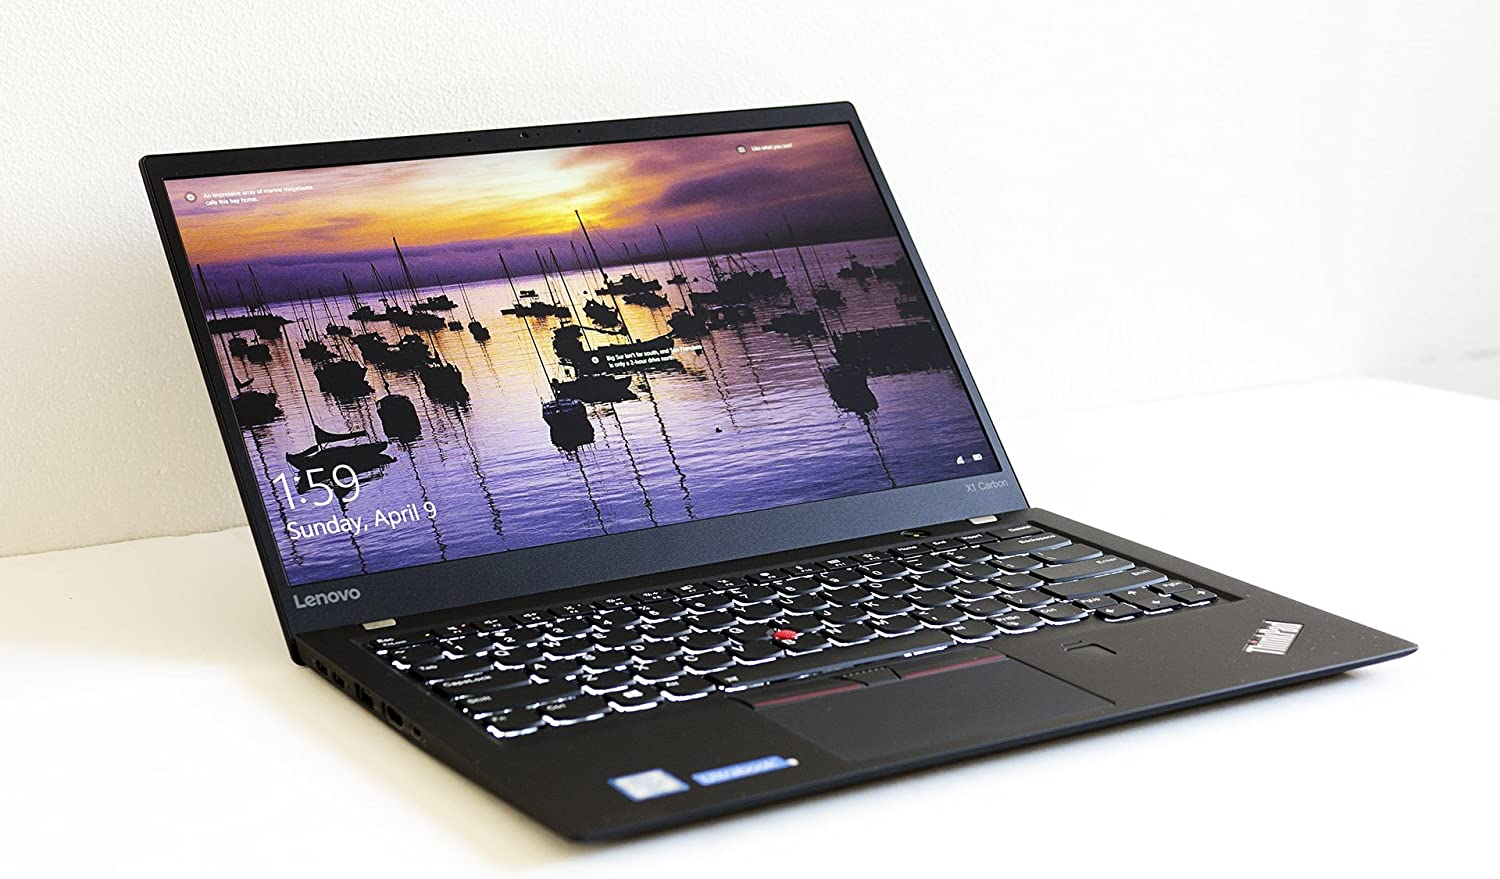 "ThinkPad X1 Carbon (5th Gen) - Black 20K4S0EB00 Intel Core i5-6200U Memory: 8 GB Hard Drive: 512 GB SSD 14"" FHD (1920 x 1080) IPS Anti-Glare"